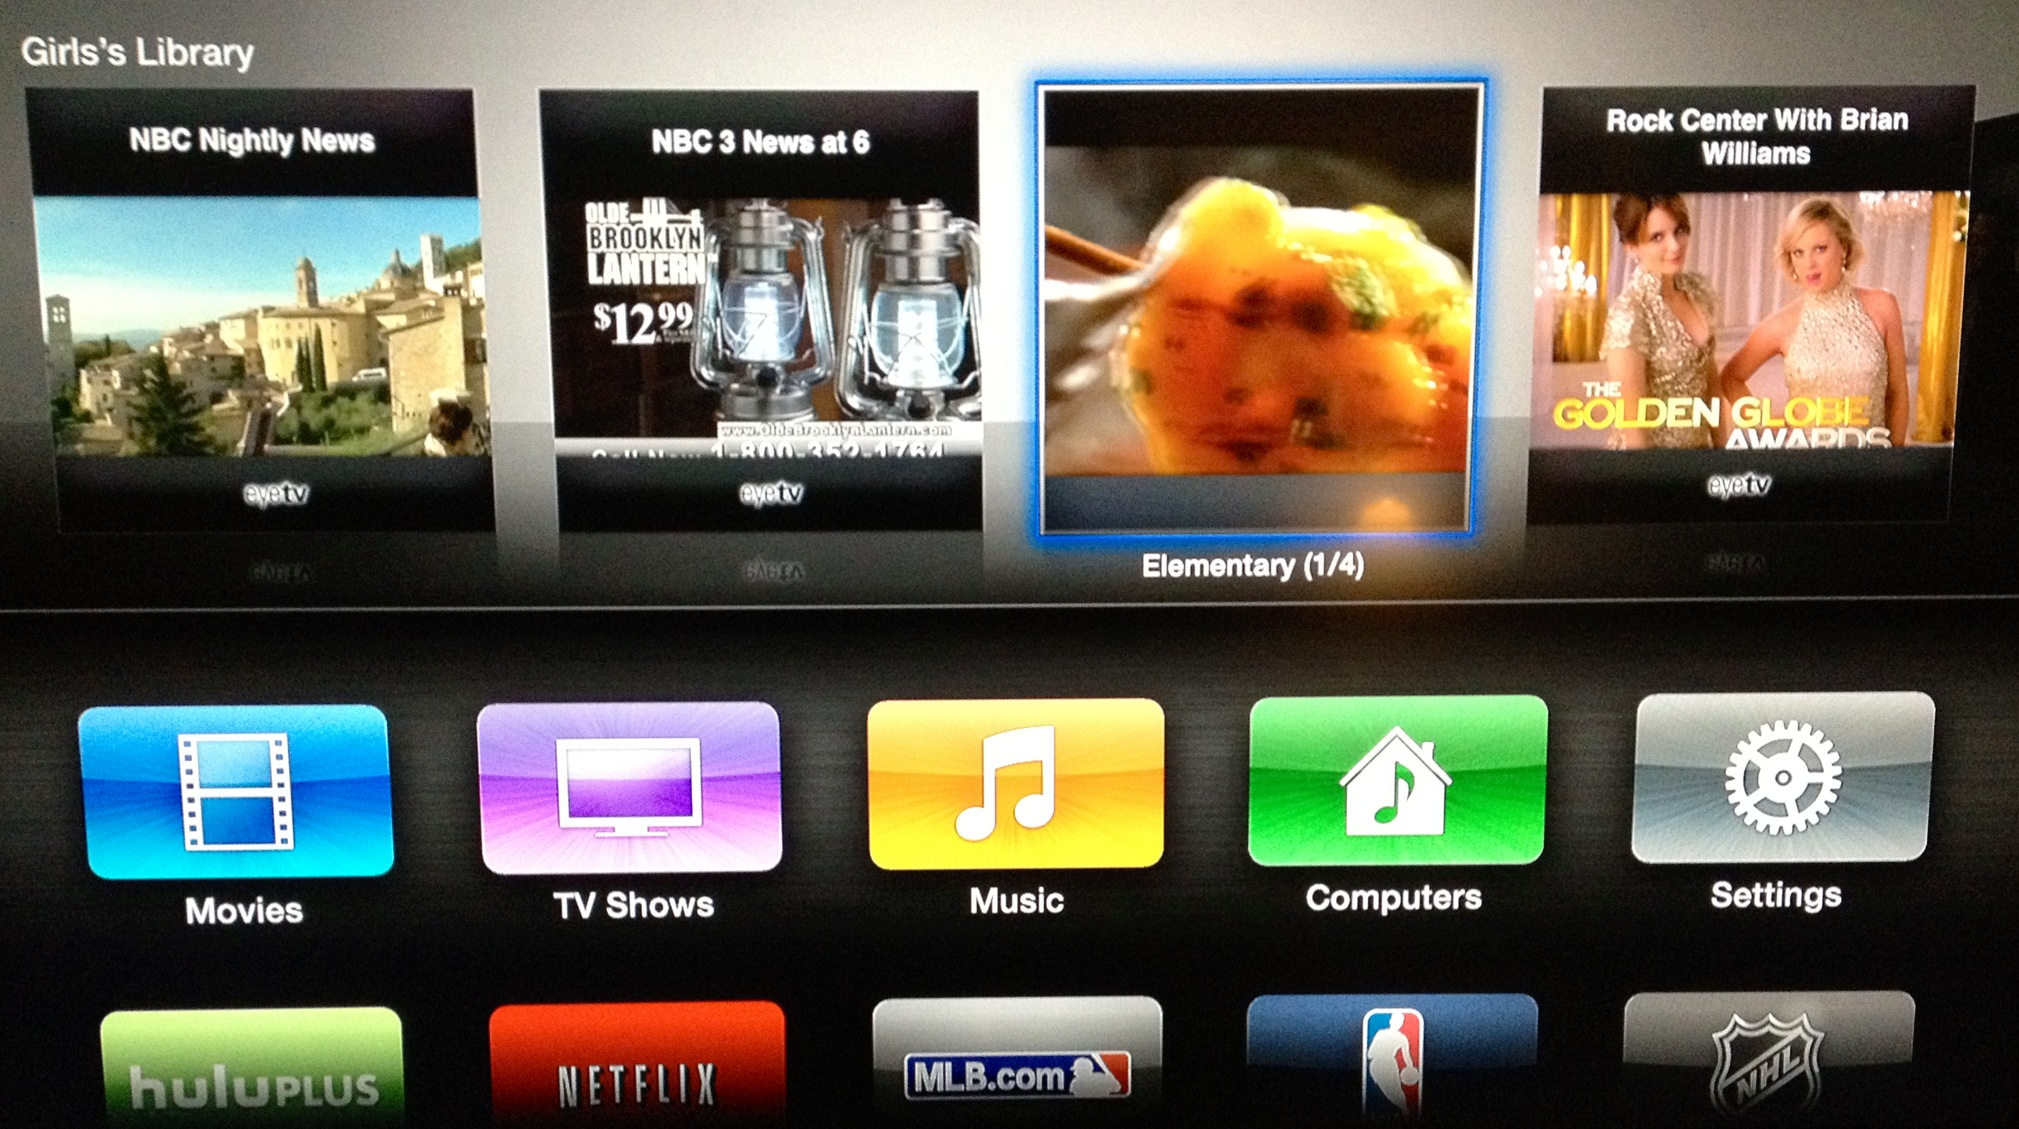 Cutting the Cord: Free Whole-house DVR without Cable TV